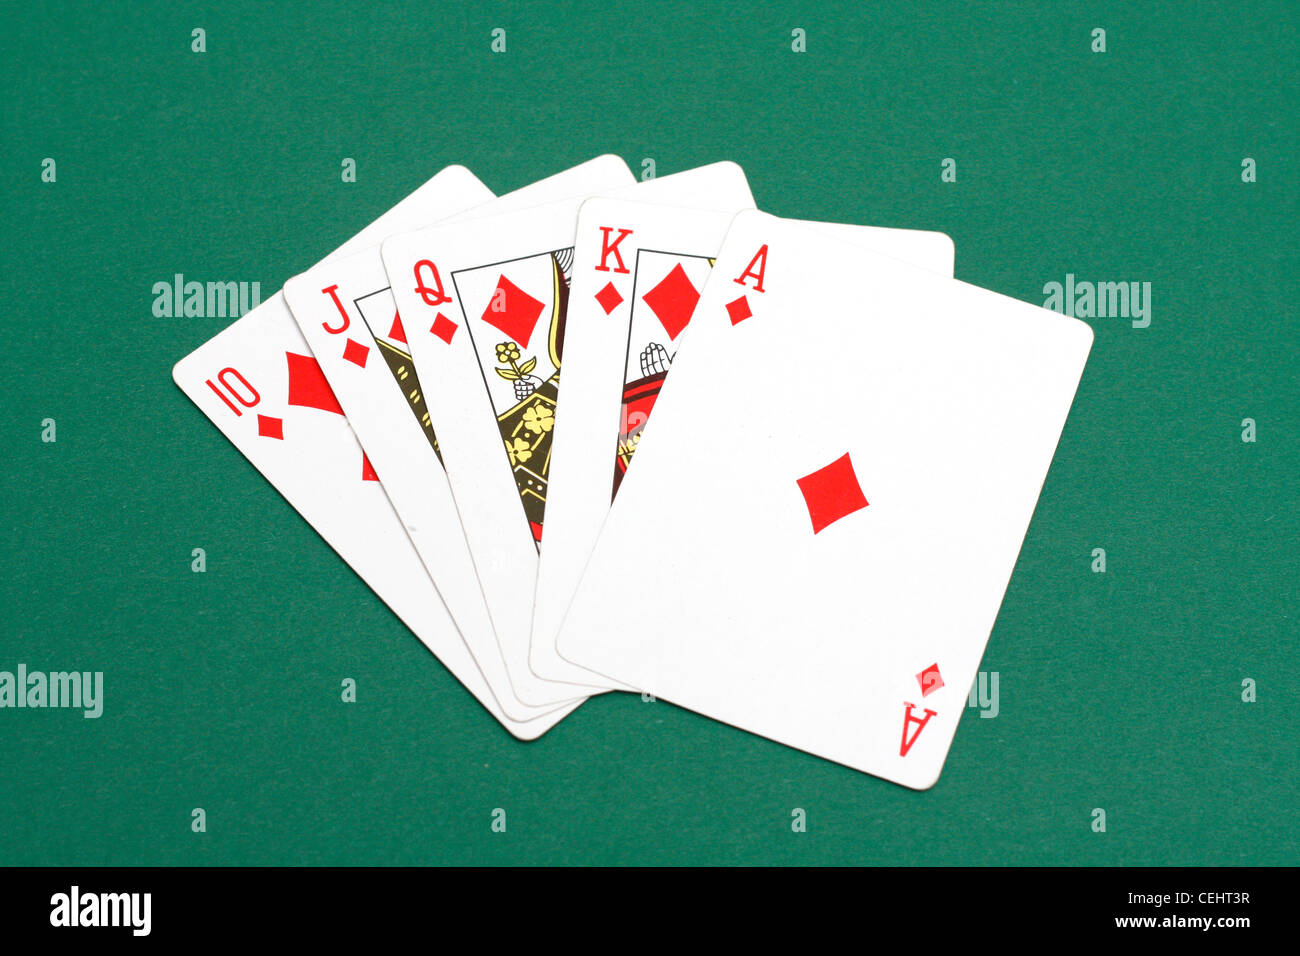 A perfect poker hand - Stock Image